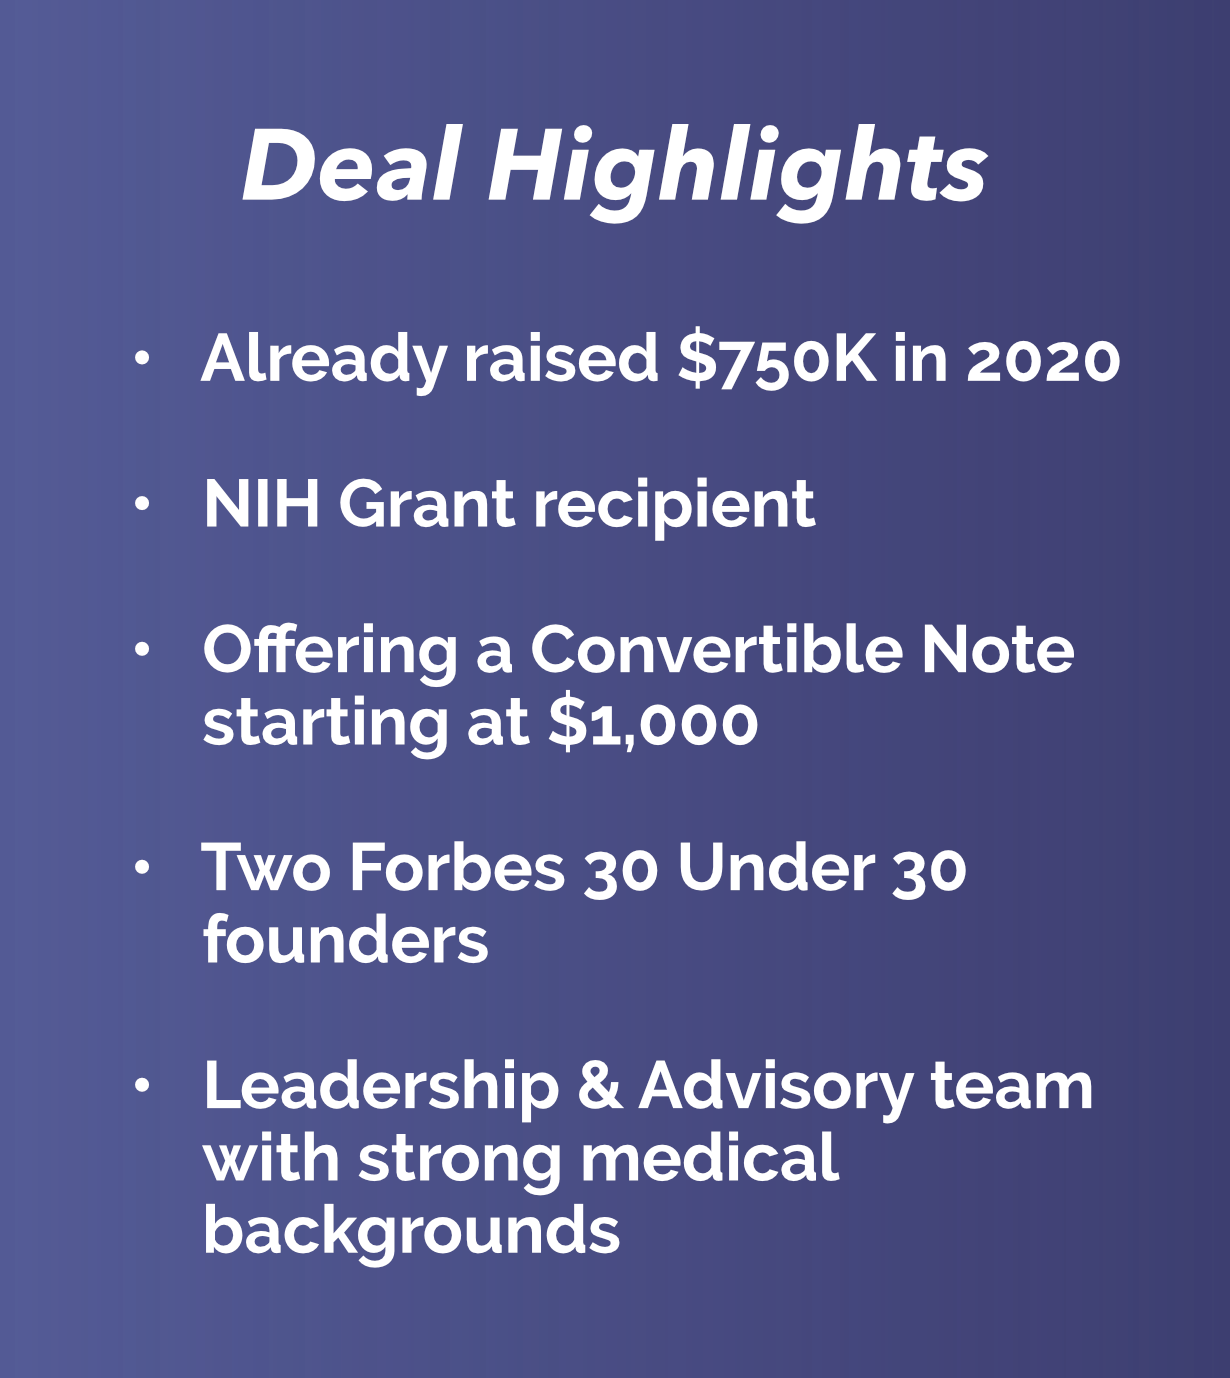 Deal Highlights. Already raised $750,000 in 2020. NIH grant recipient. convertible note at $1,000, Two Forbes 30 under 30 founders